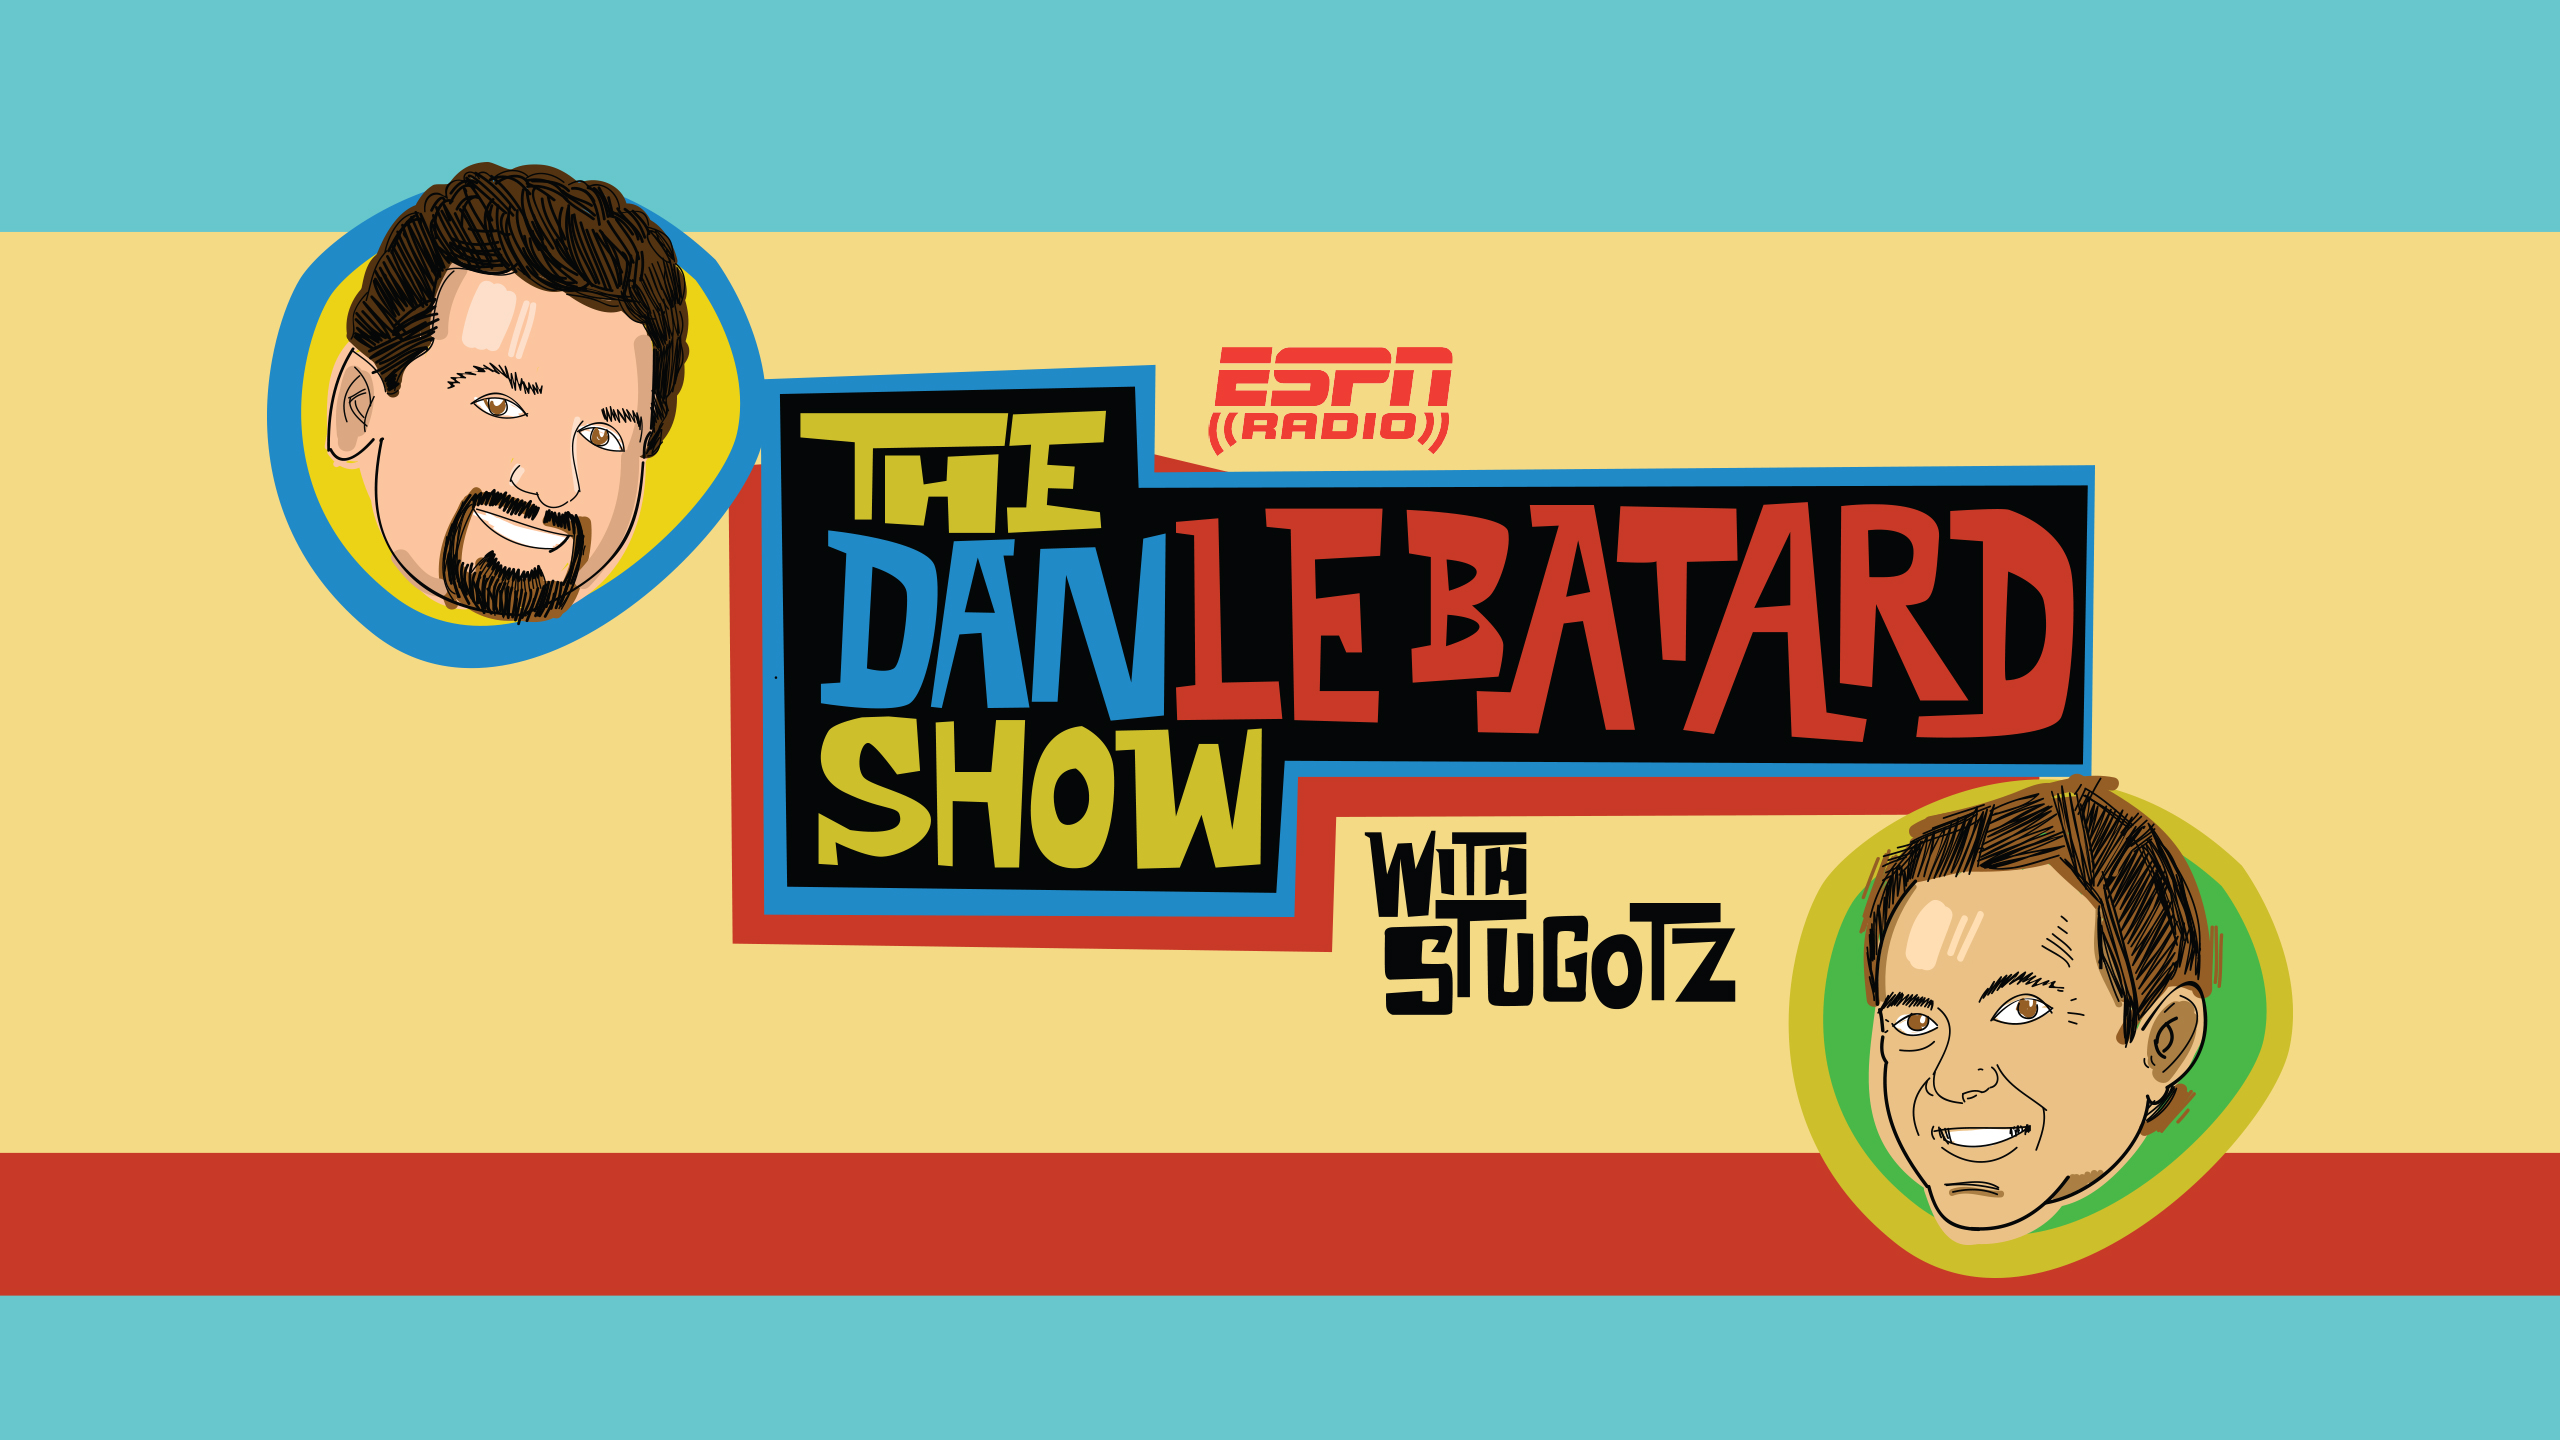 Thu, 9/20 - The Dan Le Batard Show with Stugotz Presented by Progressive